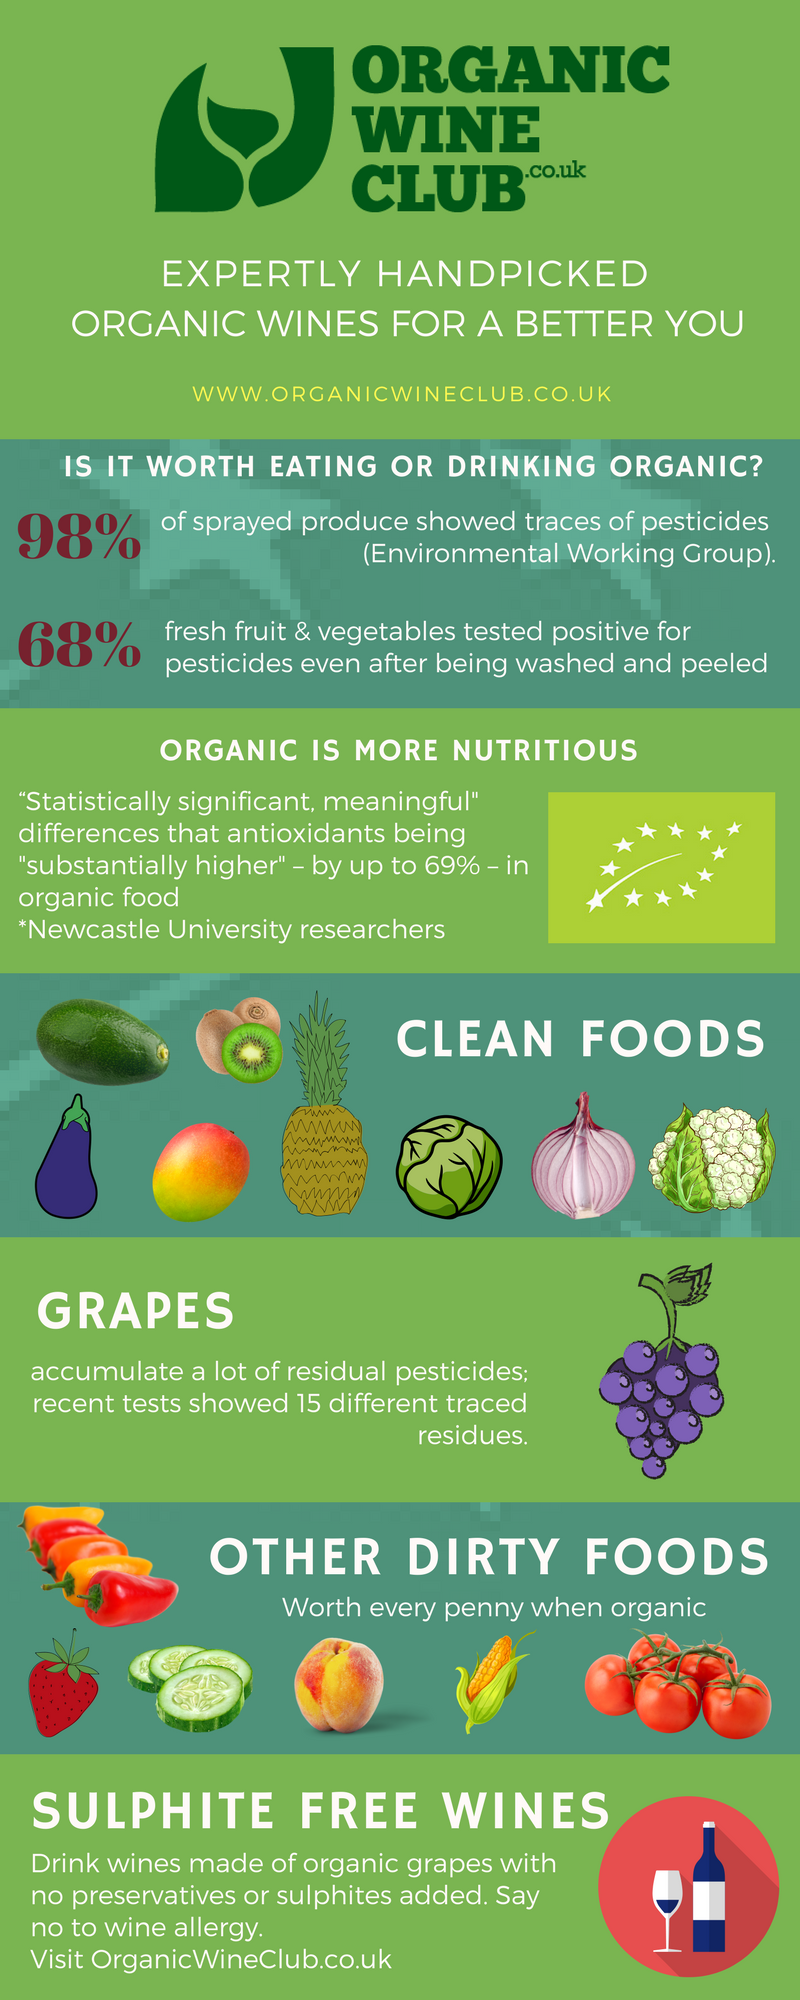 infographic about organic produce and sulphite free wine by Organic Wine Club